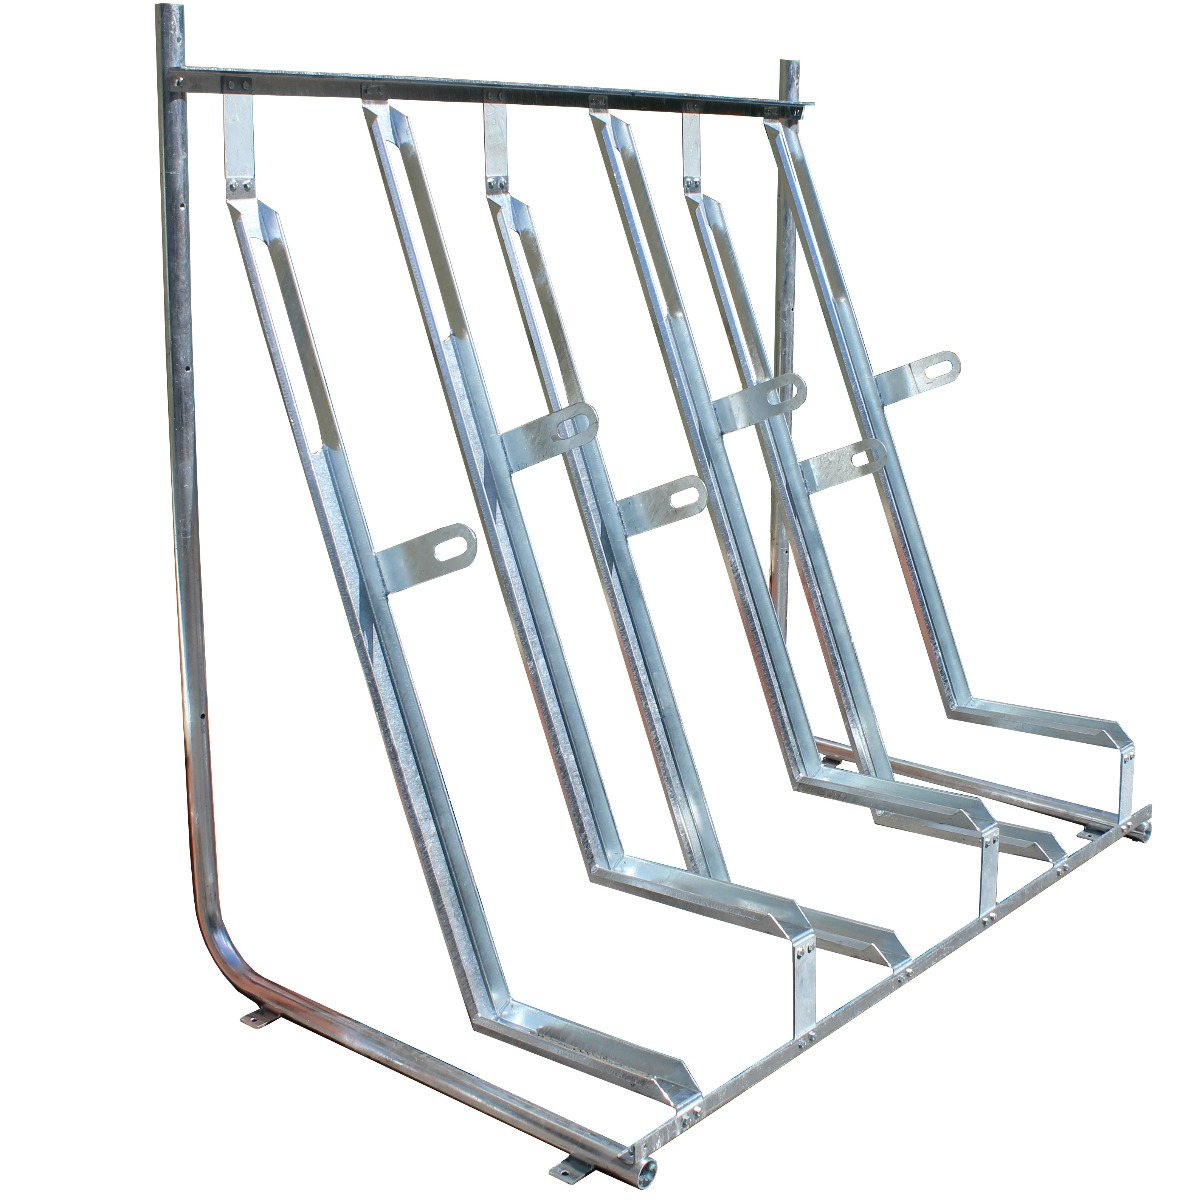 Snowdon Semi Vertical Cycle Rack